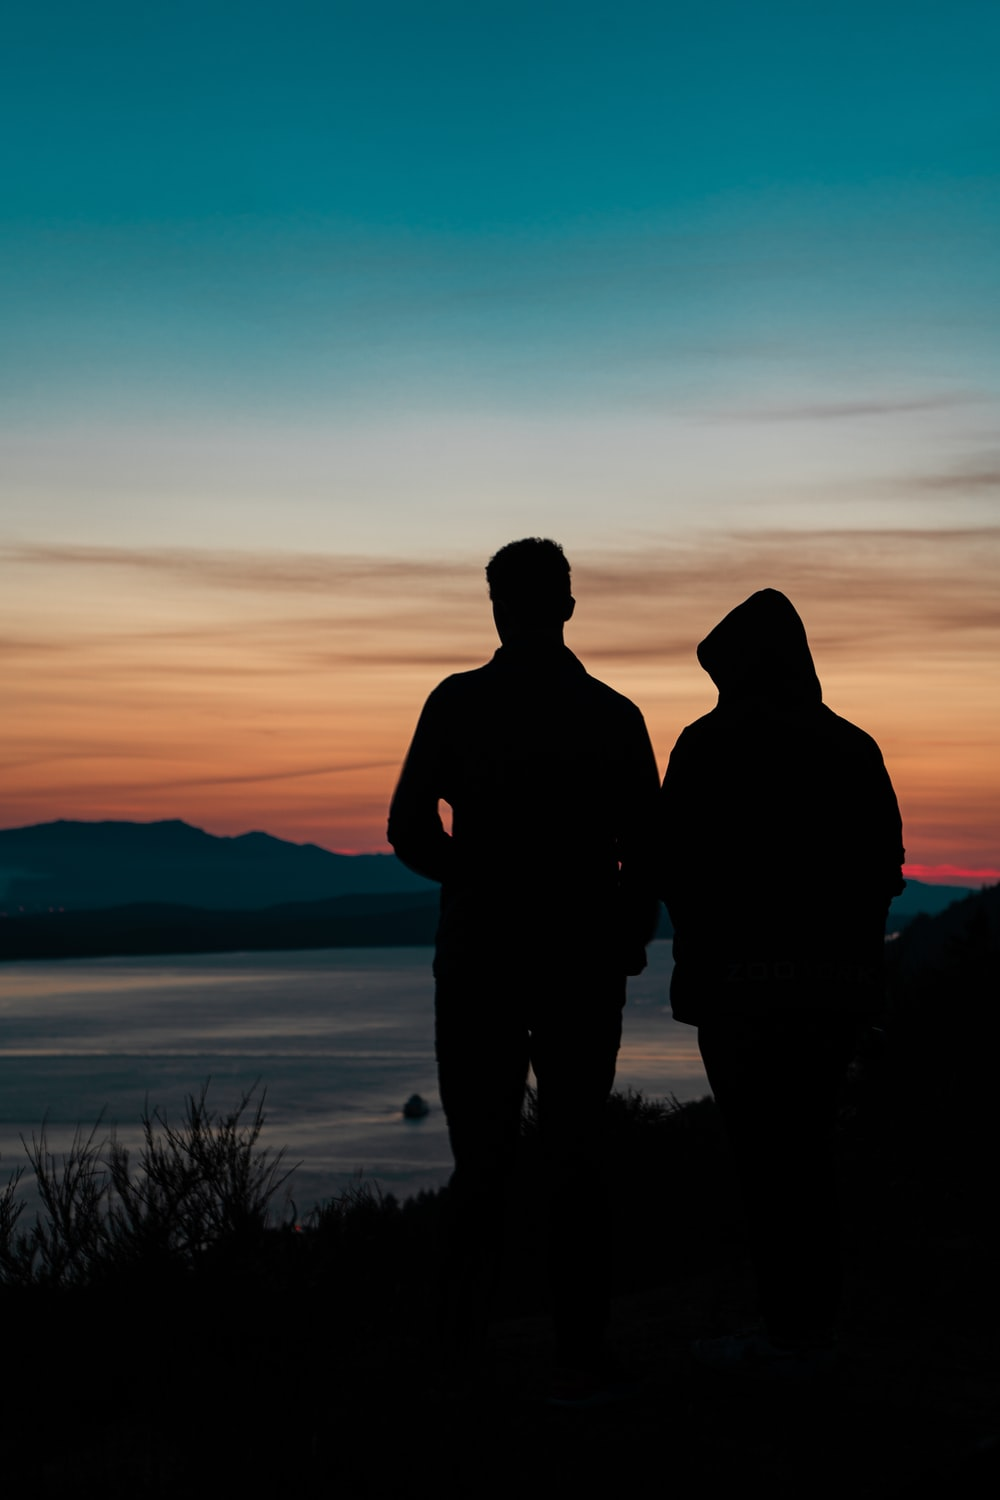 silhouette of man and woman standing near body of water during sunset